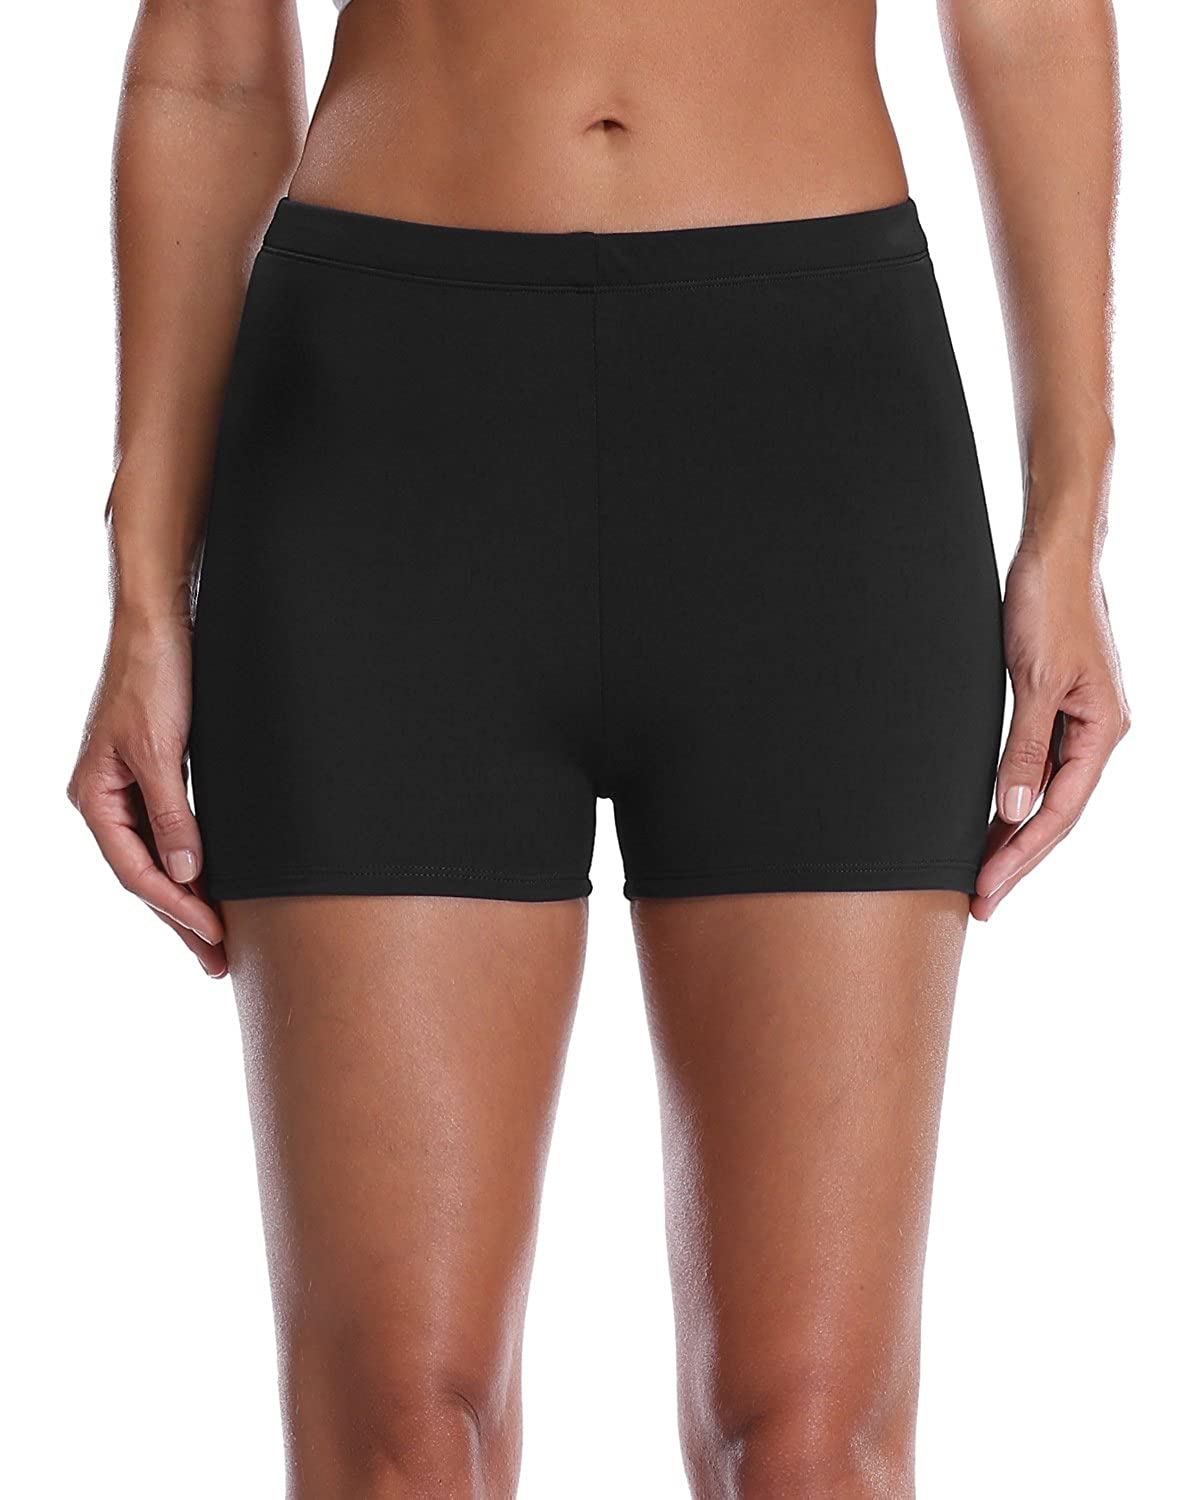 c9c539c3f498f High waist swim shorts and boyleg provide full coverage for smooth body  figure. Full-lined swimsuit bottoms made of stretchy materials ensure  comfortble ...